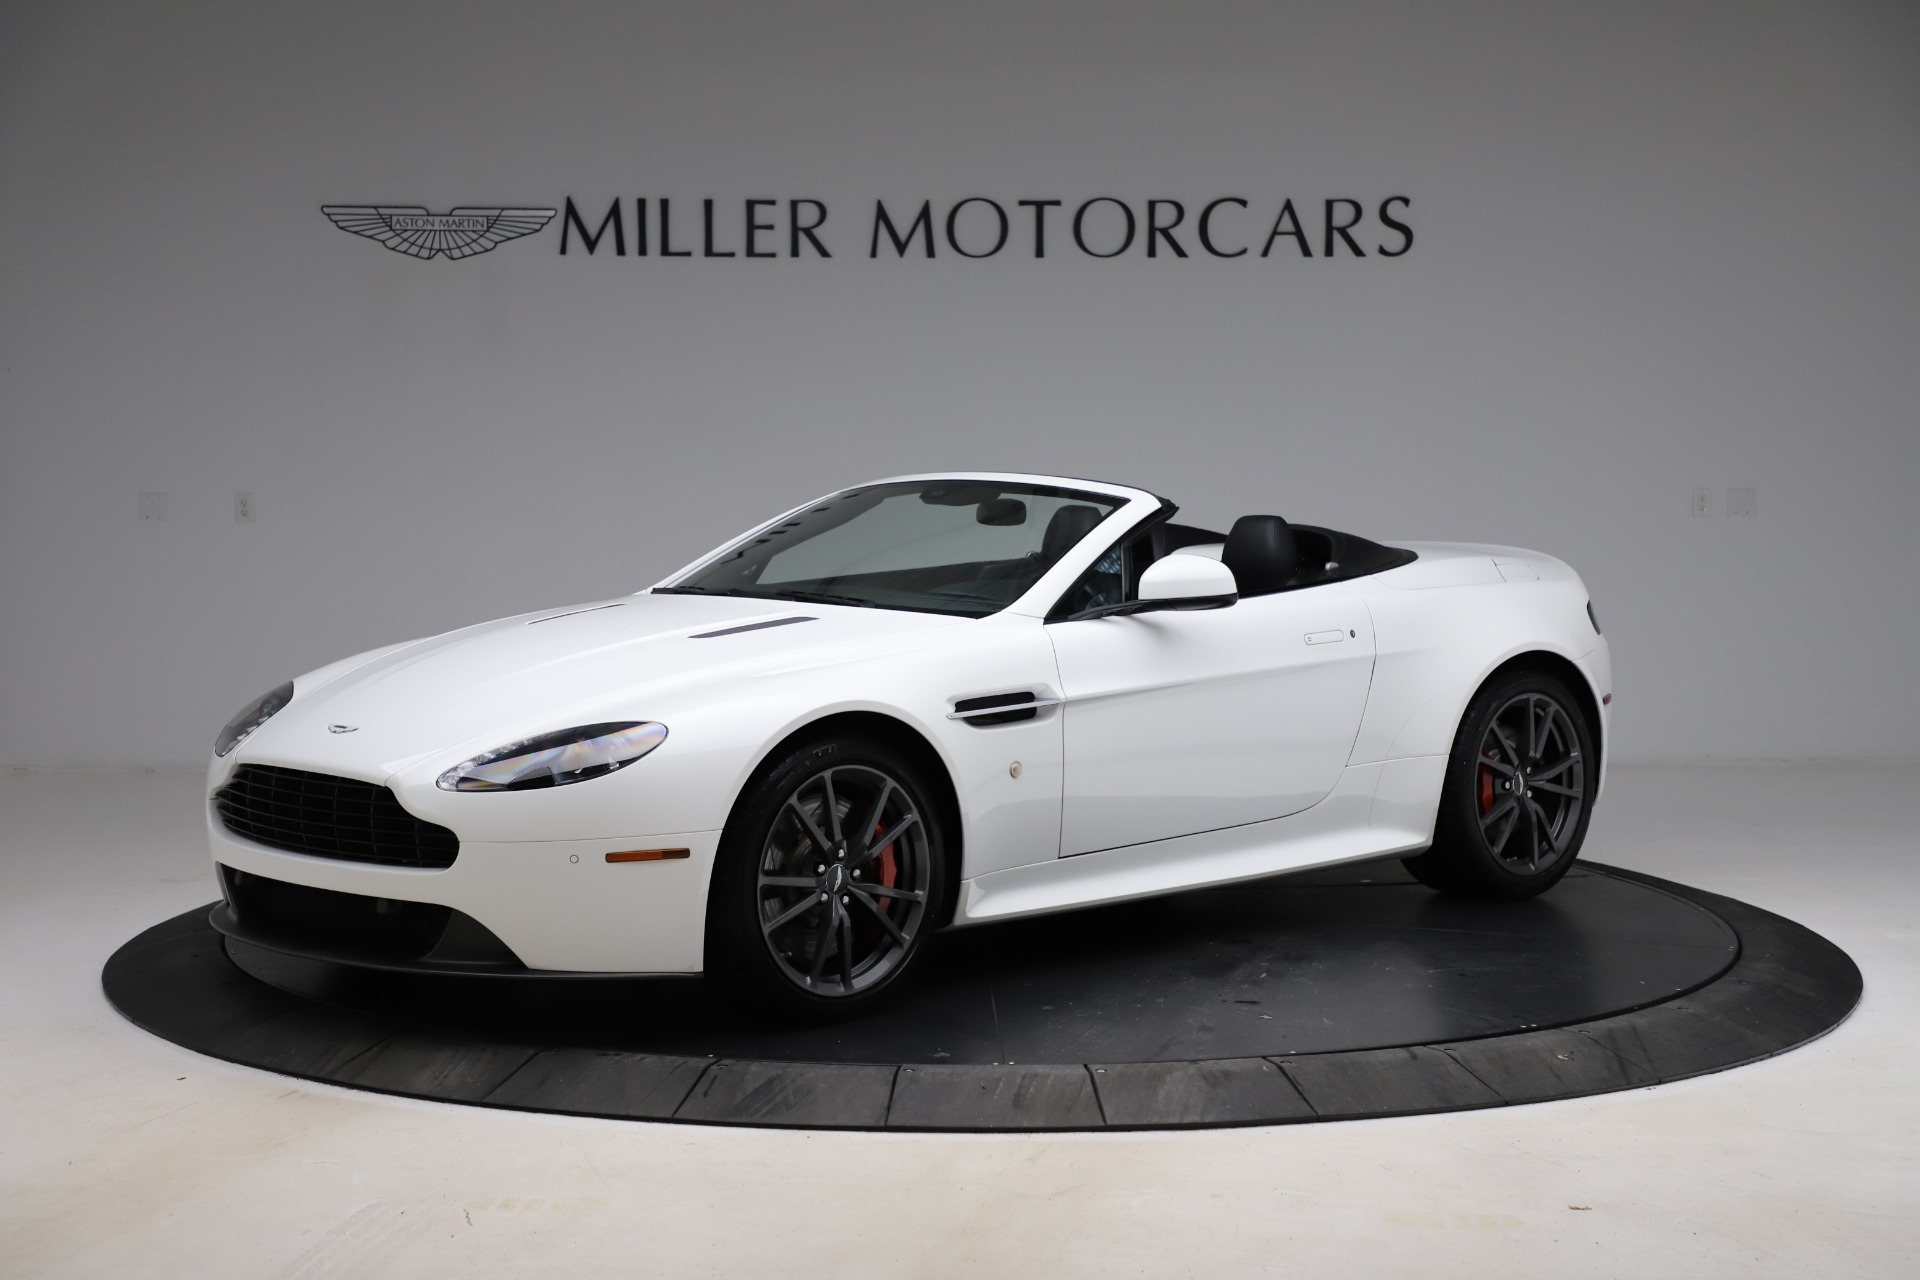 New 2015 Aston Martin Vantage GT GT Roadster For Sale In Greenwich, CT 93_main